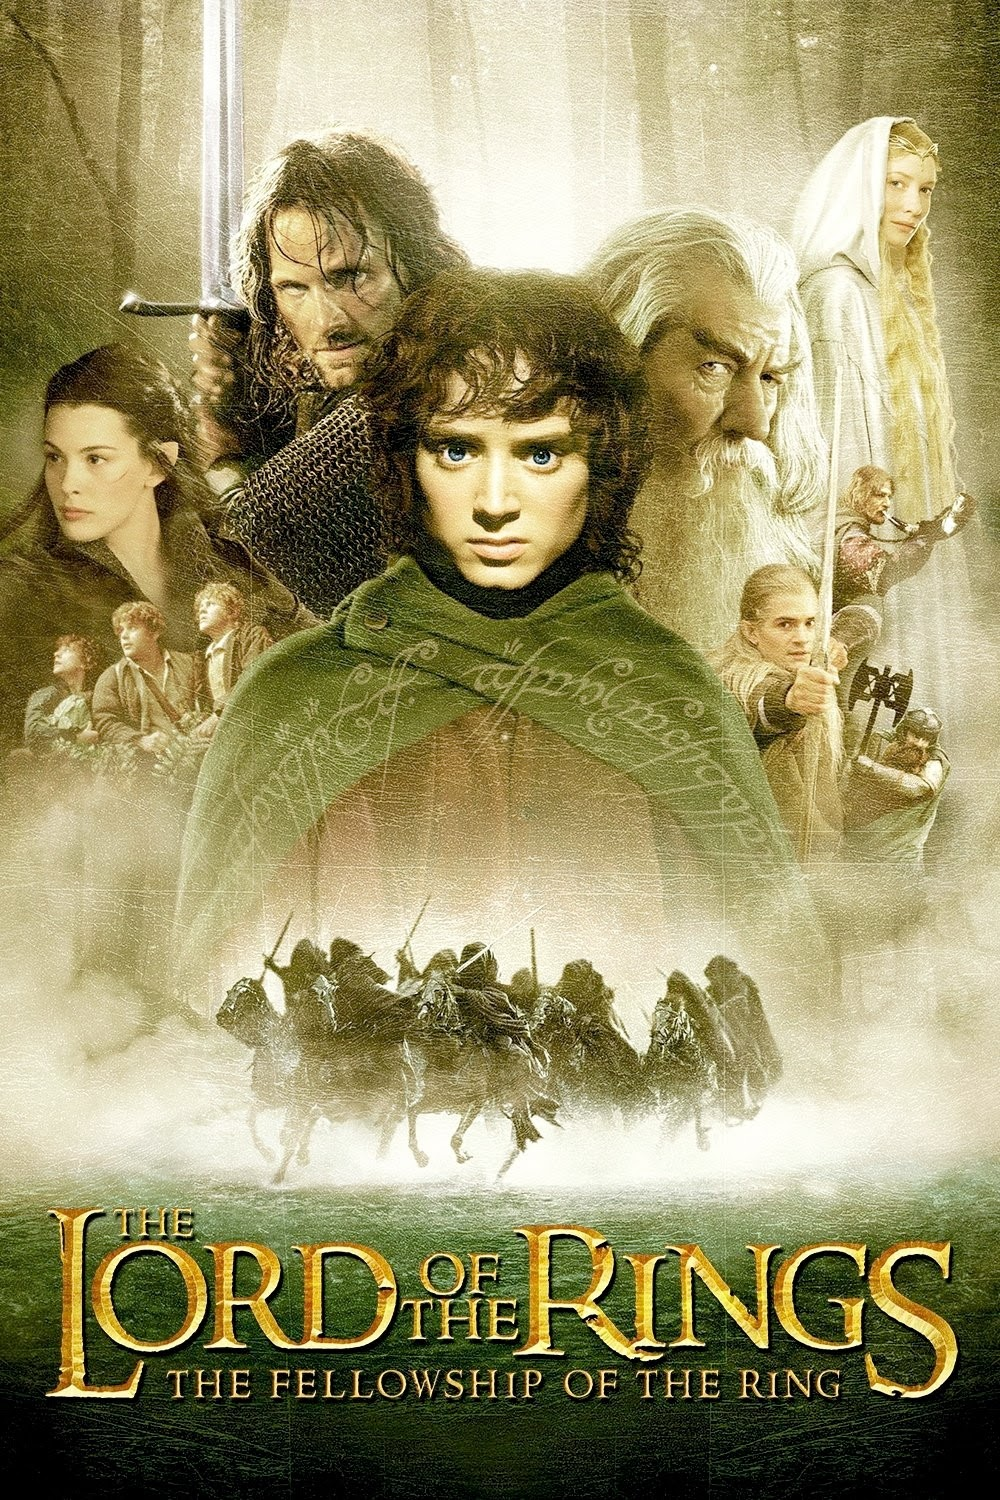 Download Film The Lord of the Rings: The Fellowship of the Ring (2001) BluRay 720p